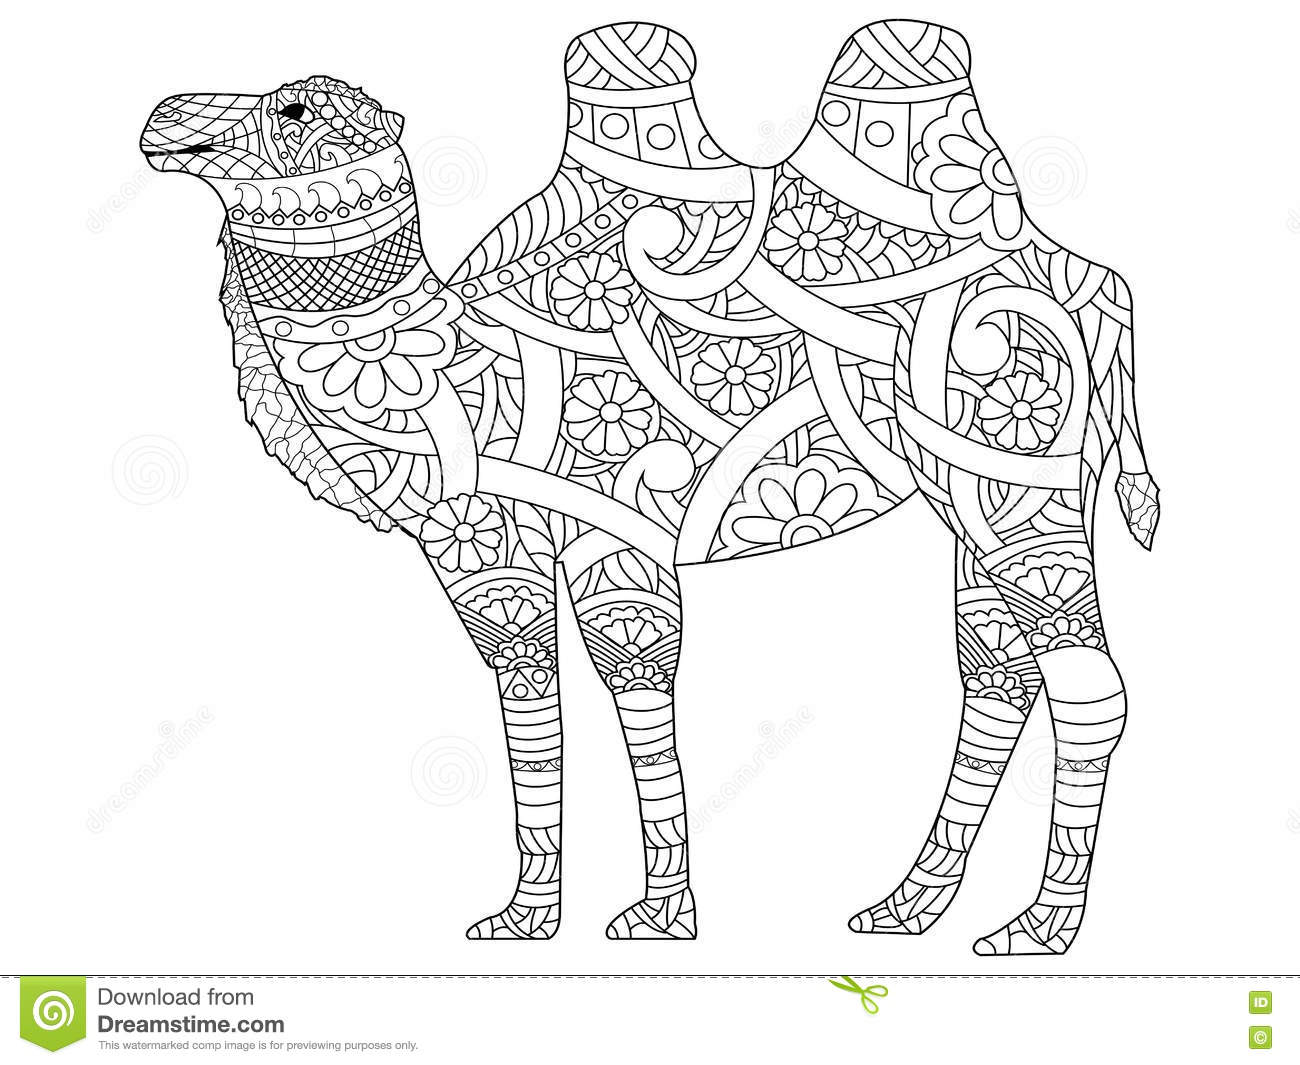 Free coloring pages camel - Camel Coloring Book Vector For Adults Royalty Free Stock Photos